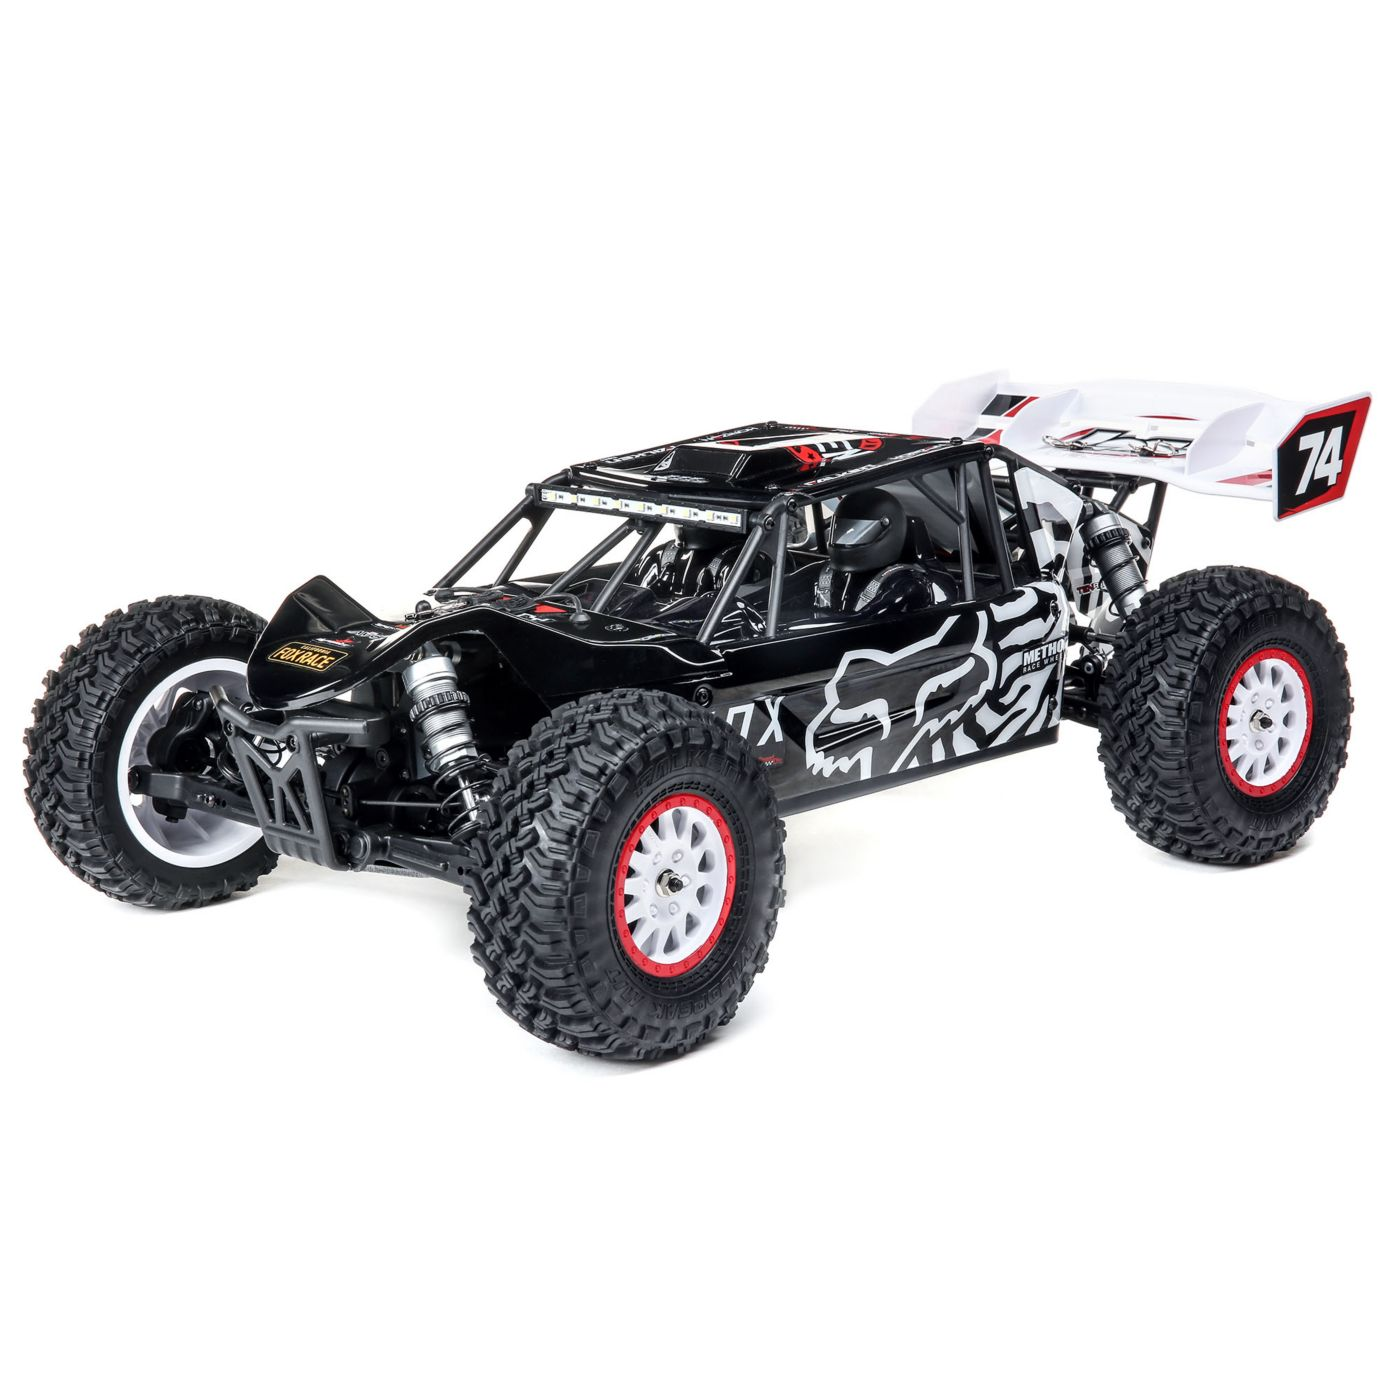 "Losi 1/10 Tenacity DB Pro 4WD Desert Buggy Brushless RTR with Smart, Fox Racing - <font color=""red""><b>FREE BATTERY PROMO</b></font>"